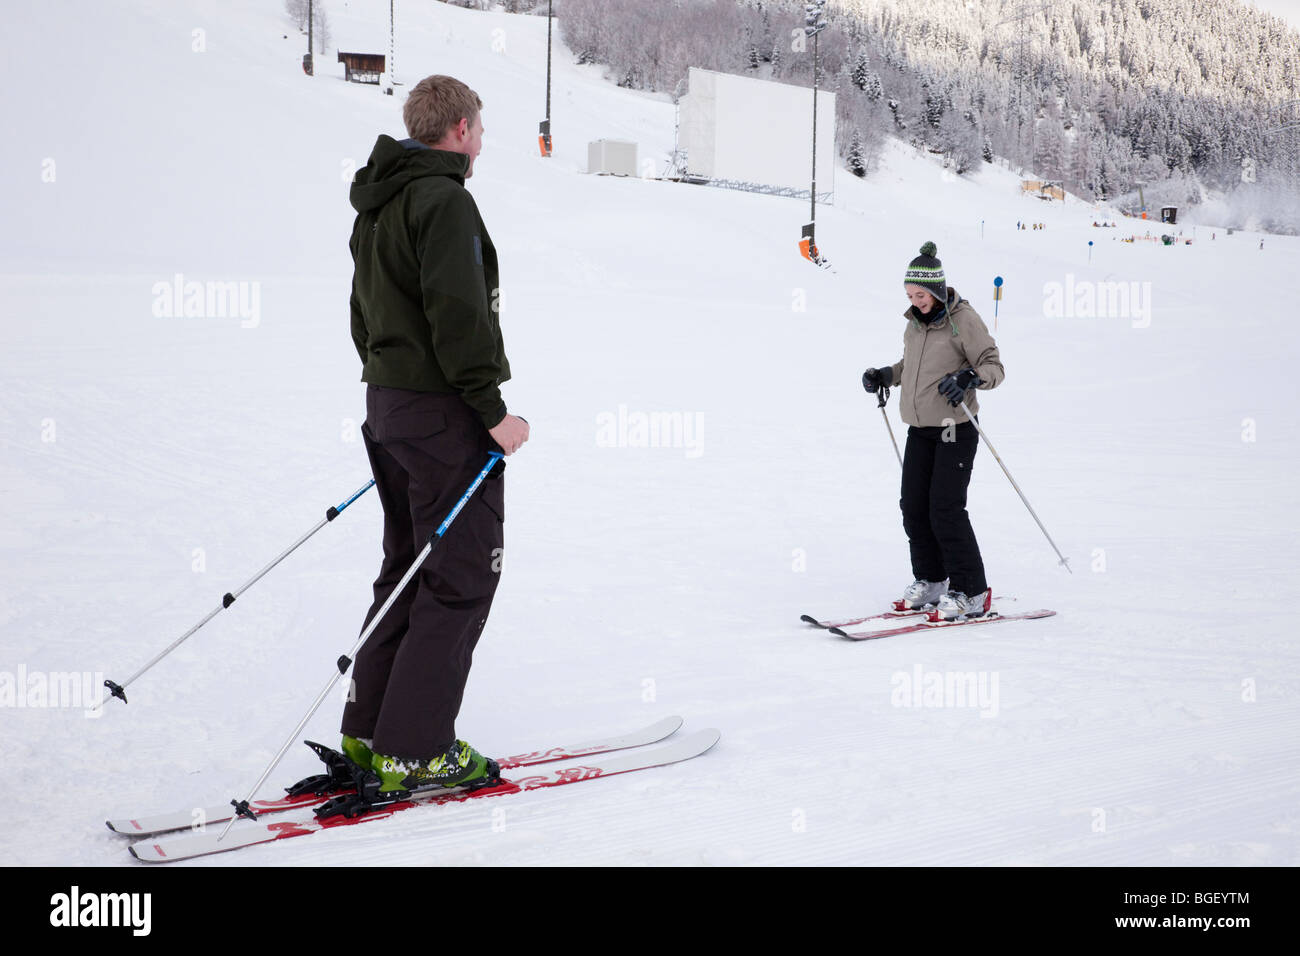 Novice skier learning to ski with personal instructor on snow covered nursery slopes in Austrian Alps. - Stock Image